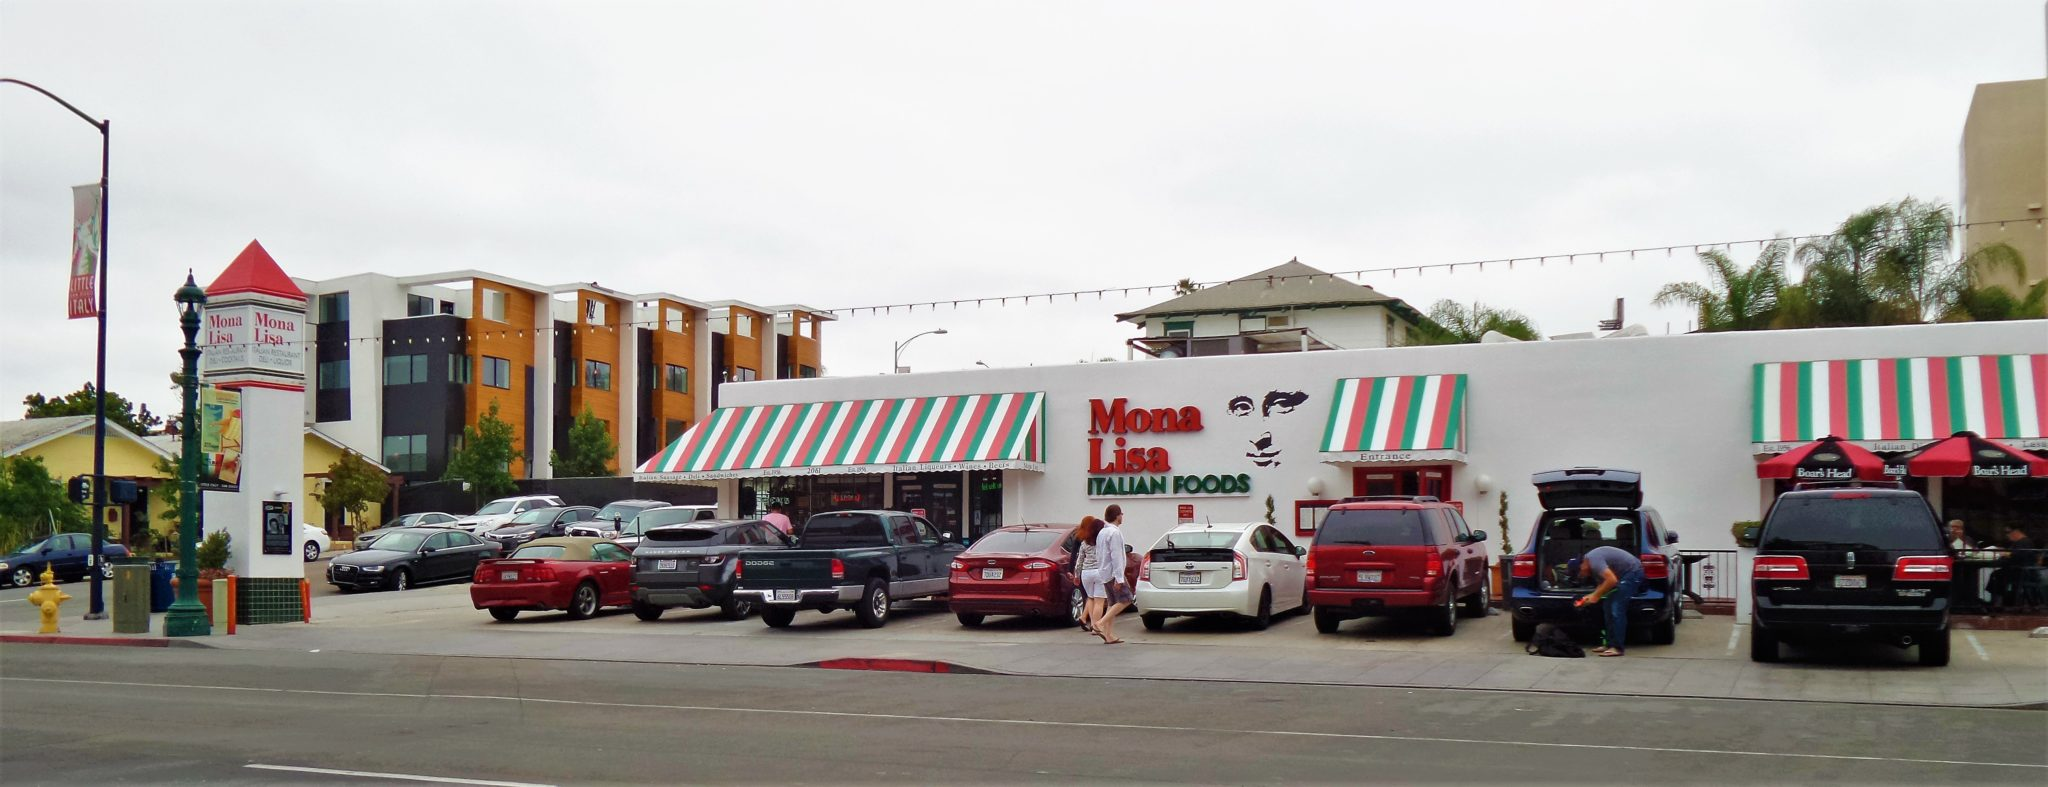 Mona Lisa restaurant, Little Italy, things to do in San Diego, California